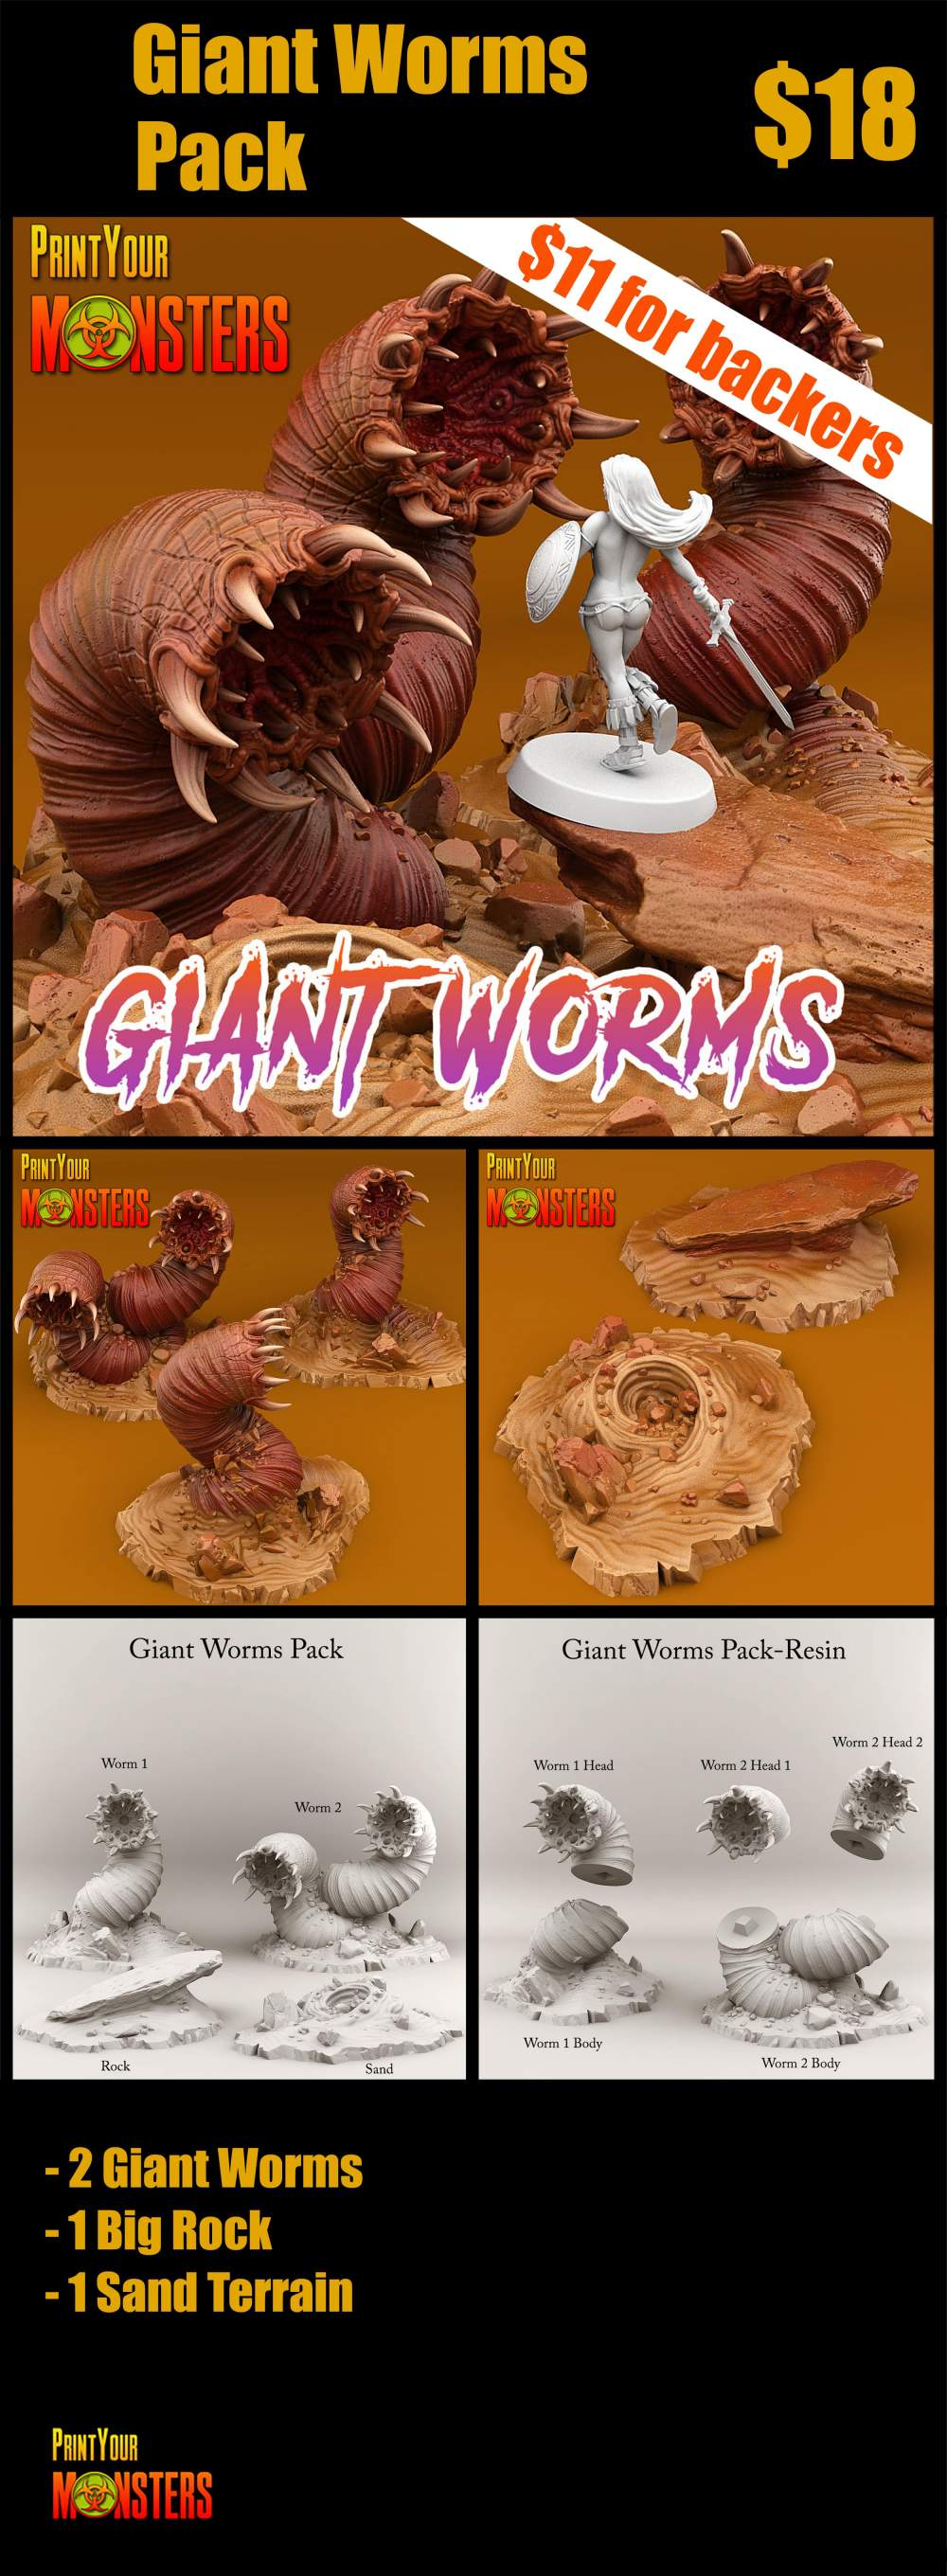 Giant Worms Pack